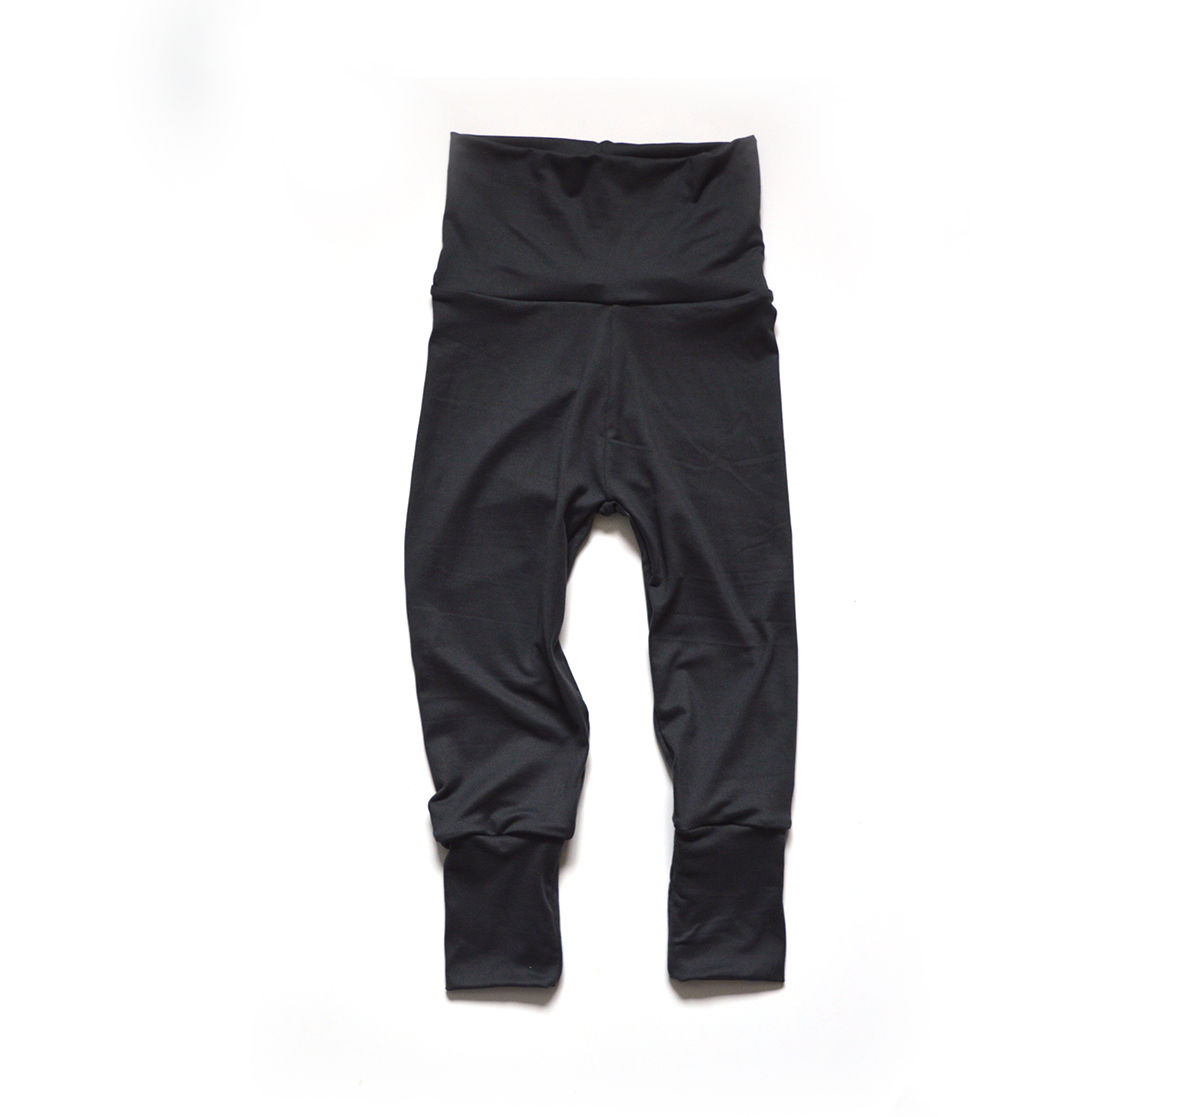 Little Sprout One-Size Pants™ Charcoal Grey - Stretch 00534